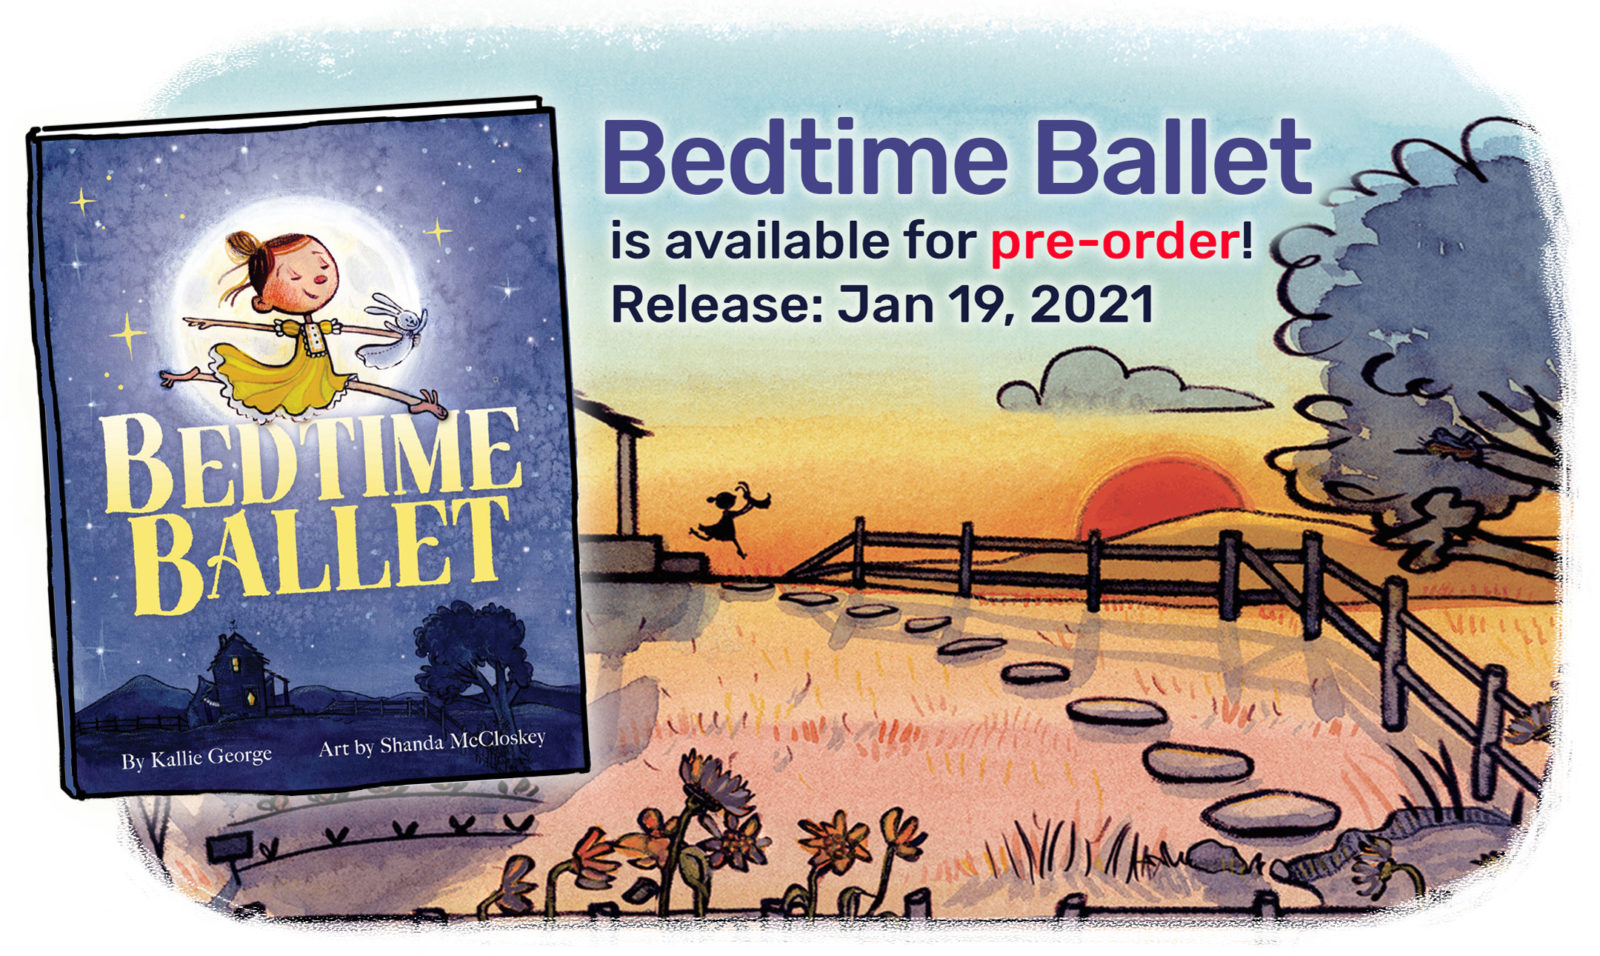 Bedtime Ballet is available for pre-order! Release: Jan 19, 2021